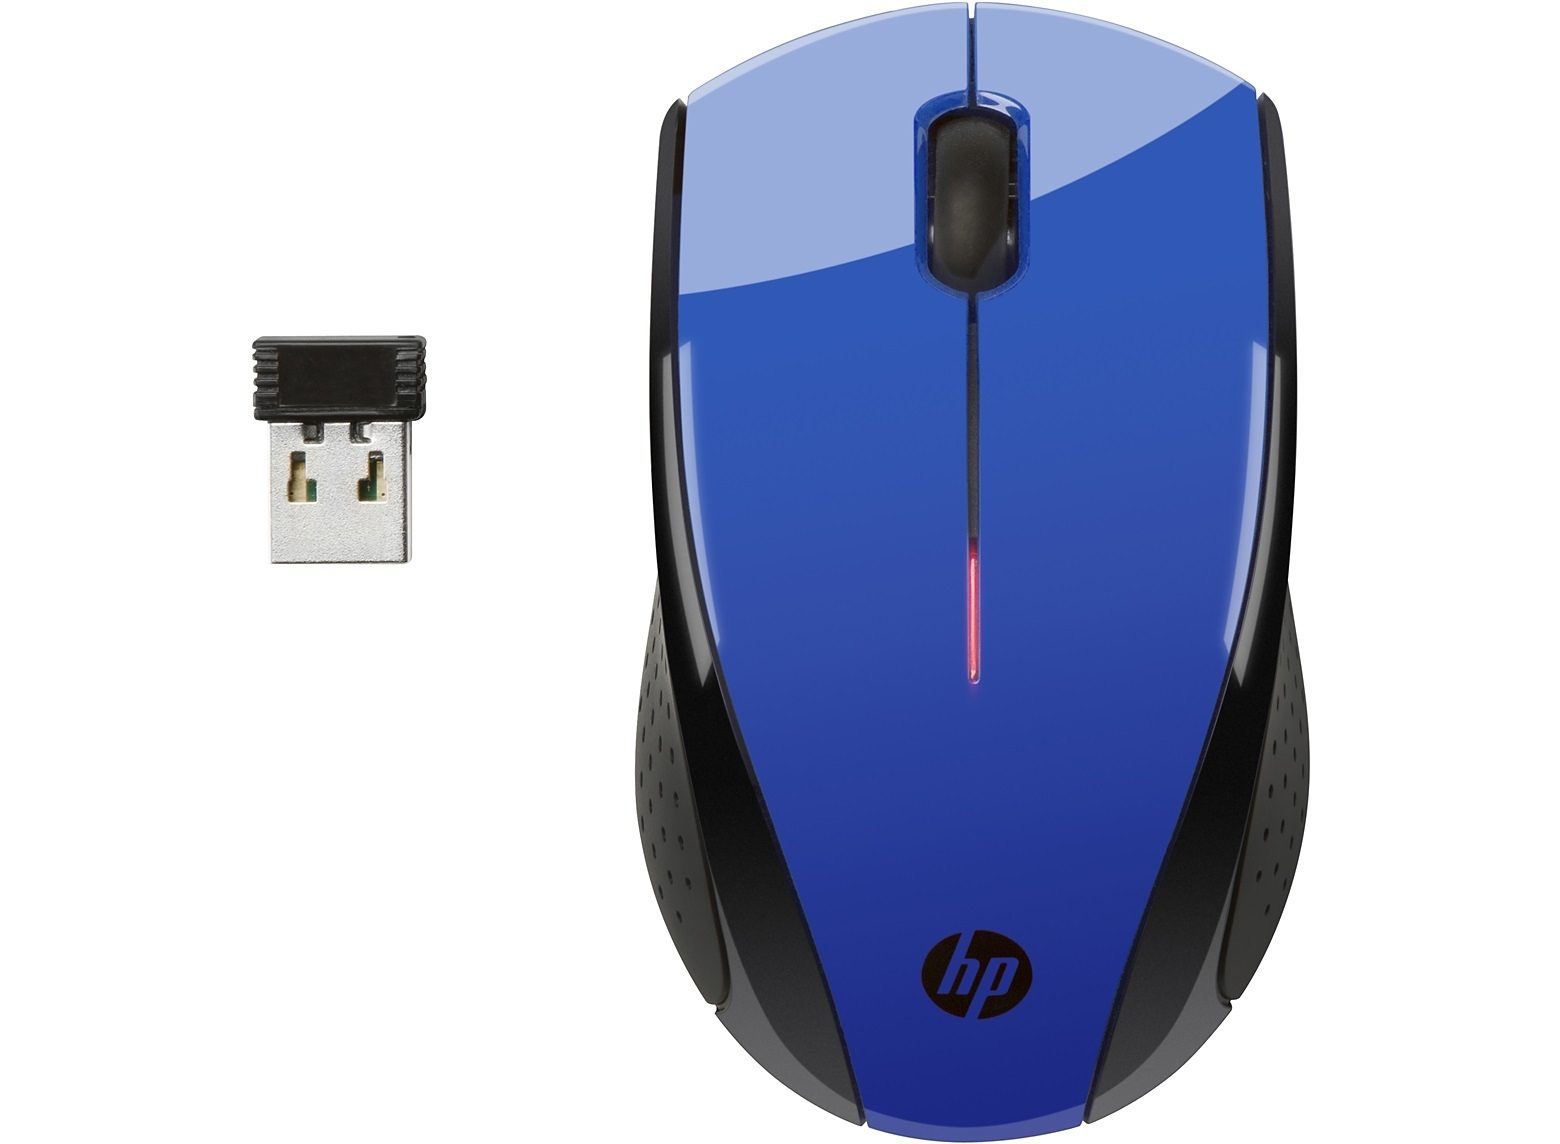 HP Maus »X3000 Wireless-Maus blau«